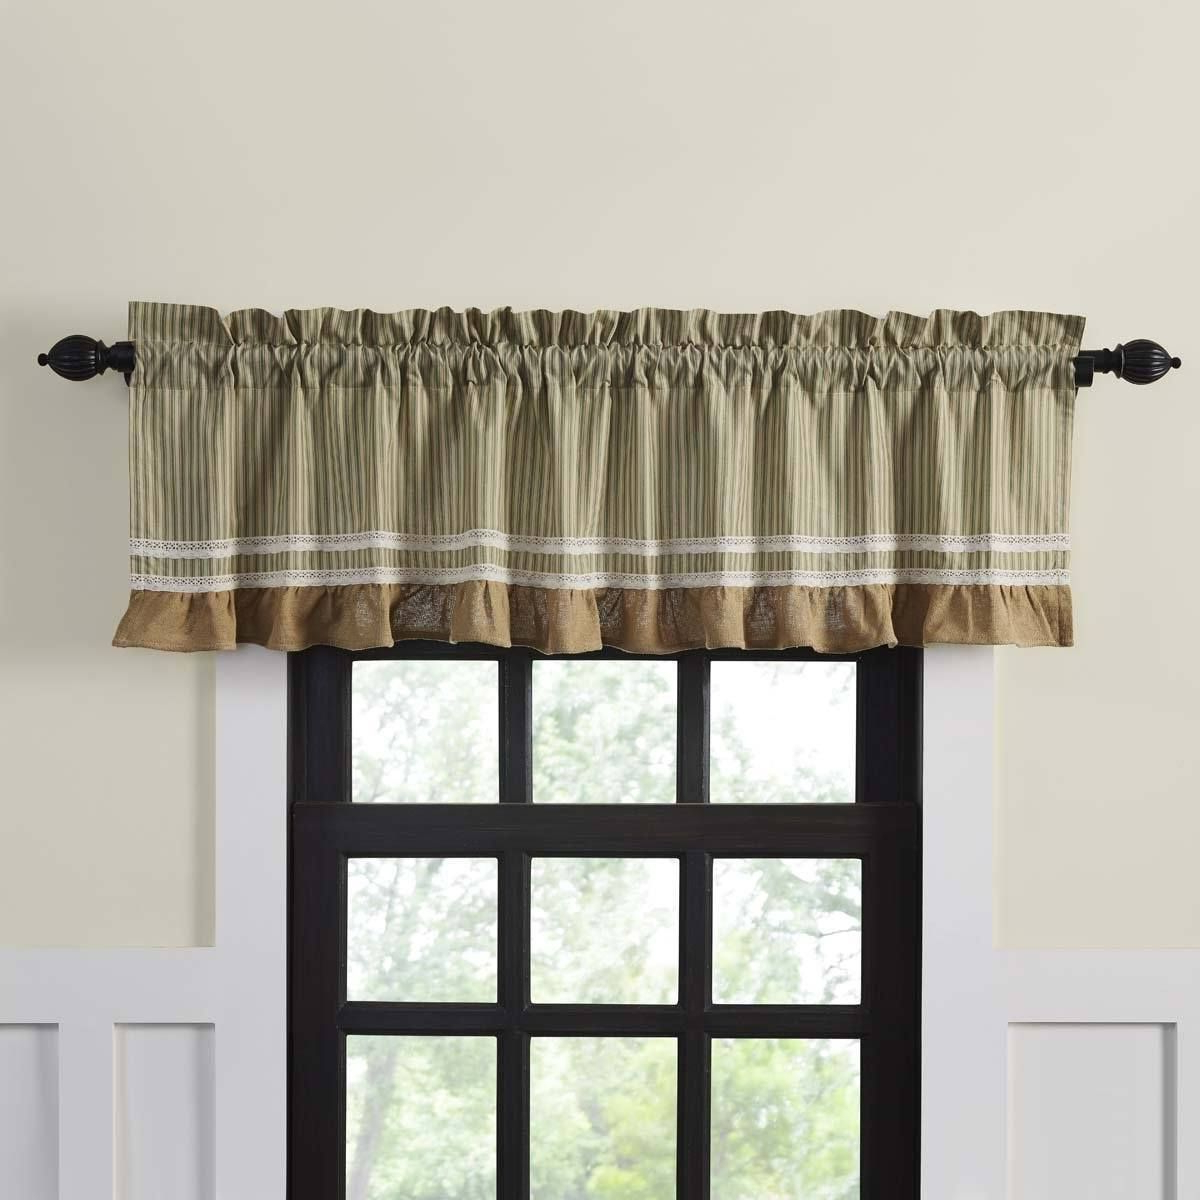 Primitive Home Decor Throughout Rod Pocket Cotton Striped Lace Cotton Burlap Kitchen Curtains (View 3 of 20)